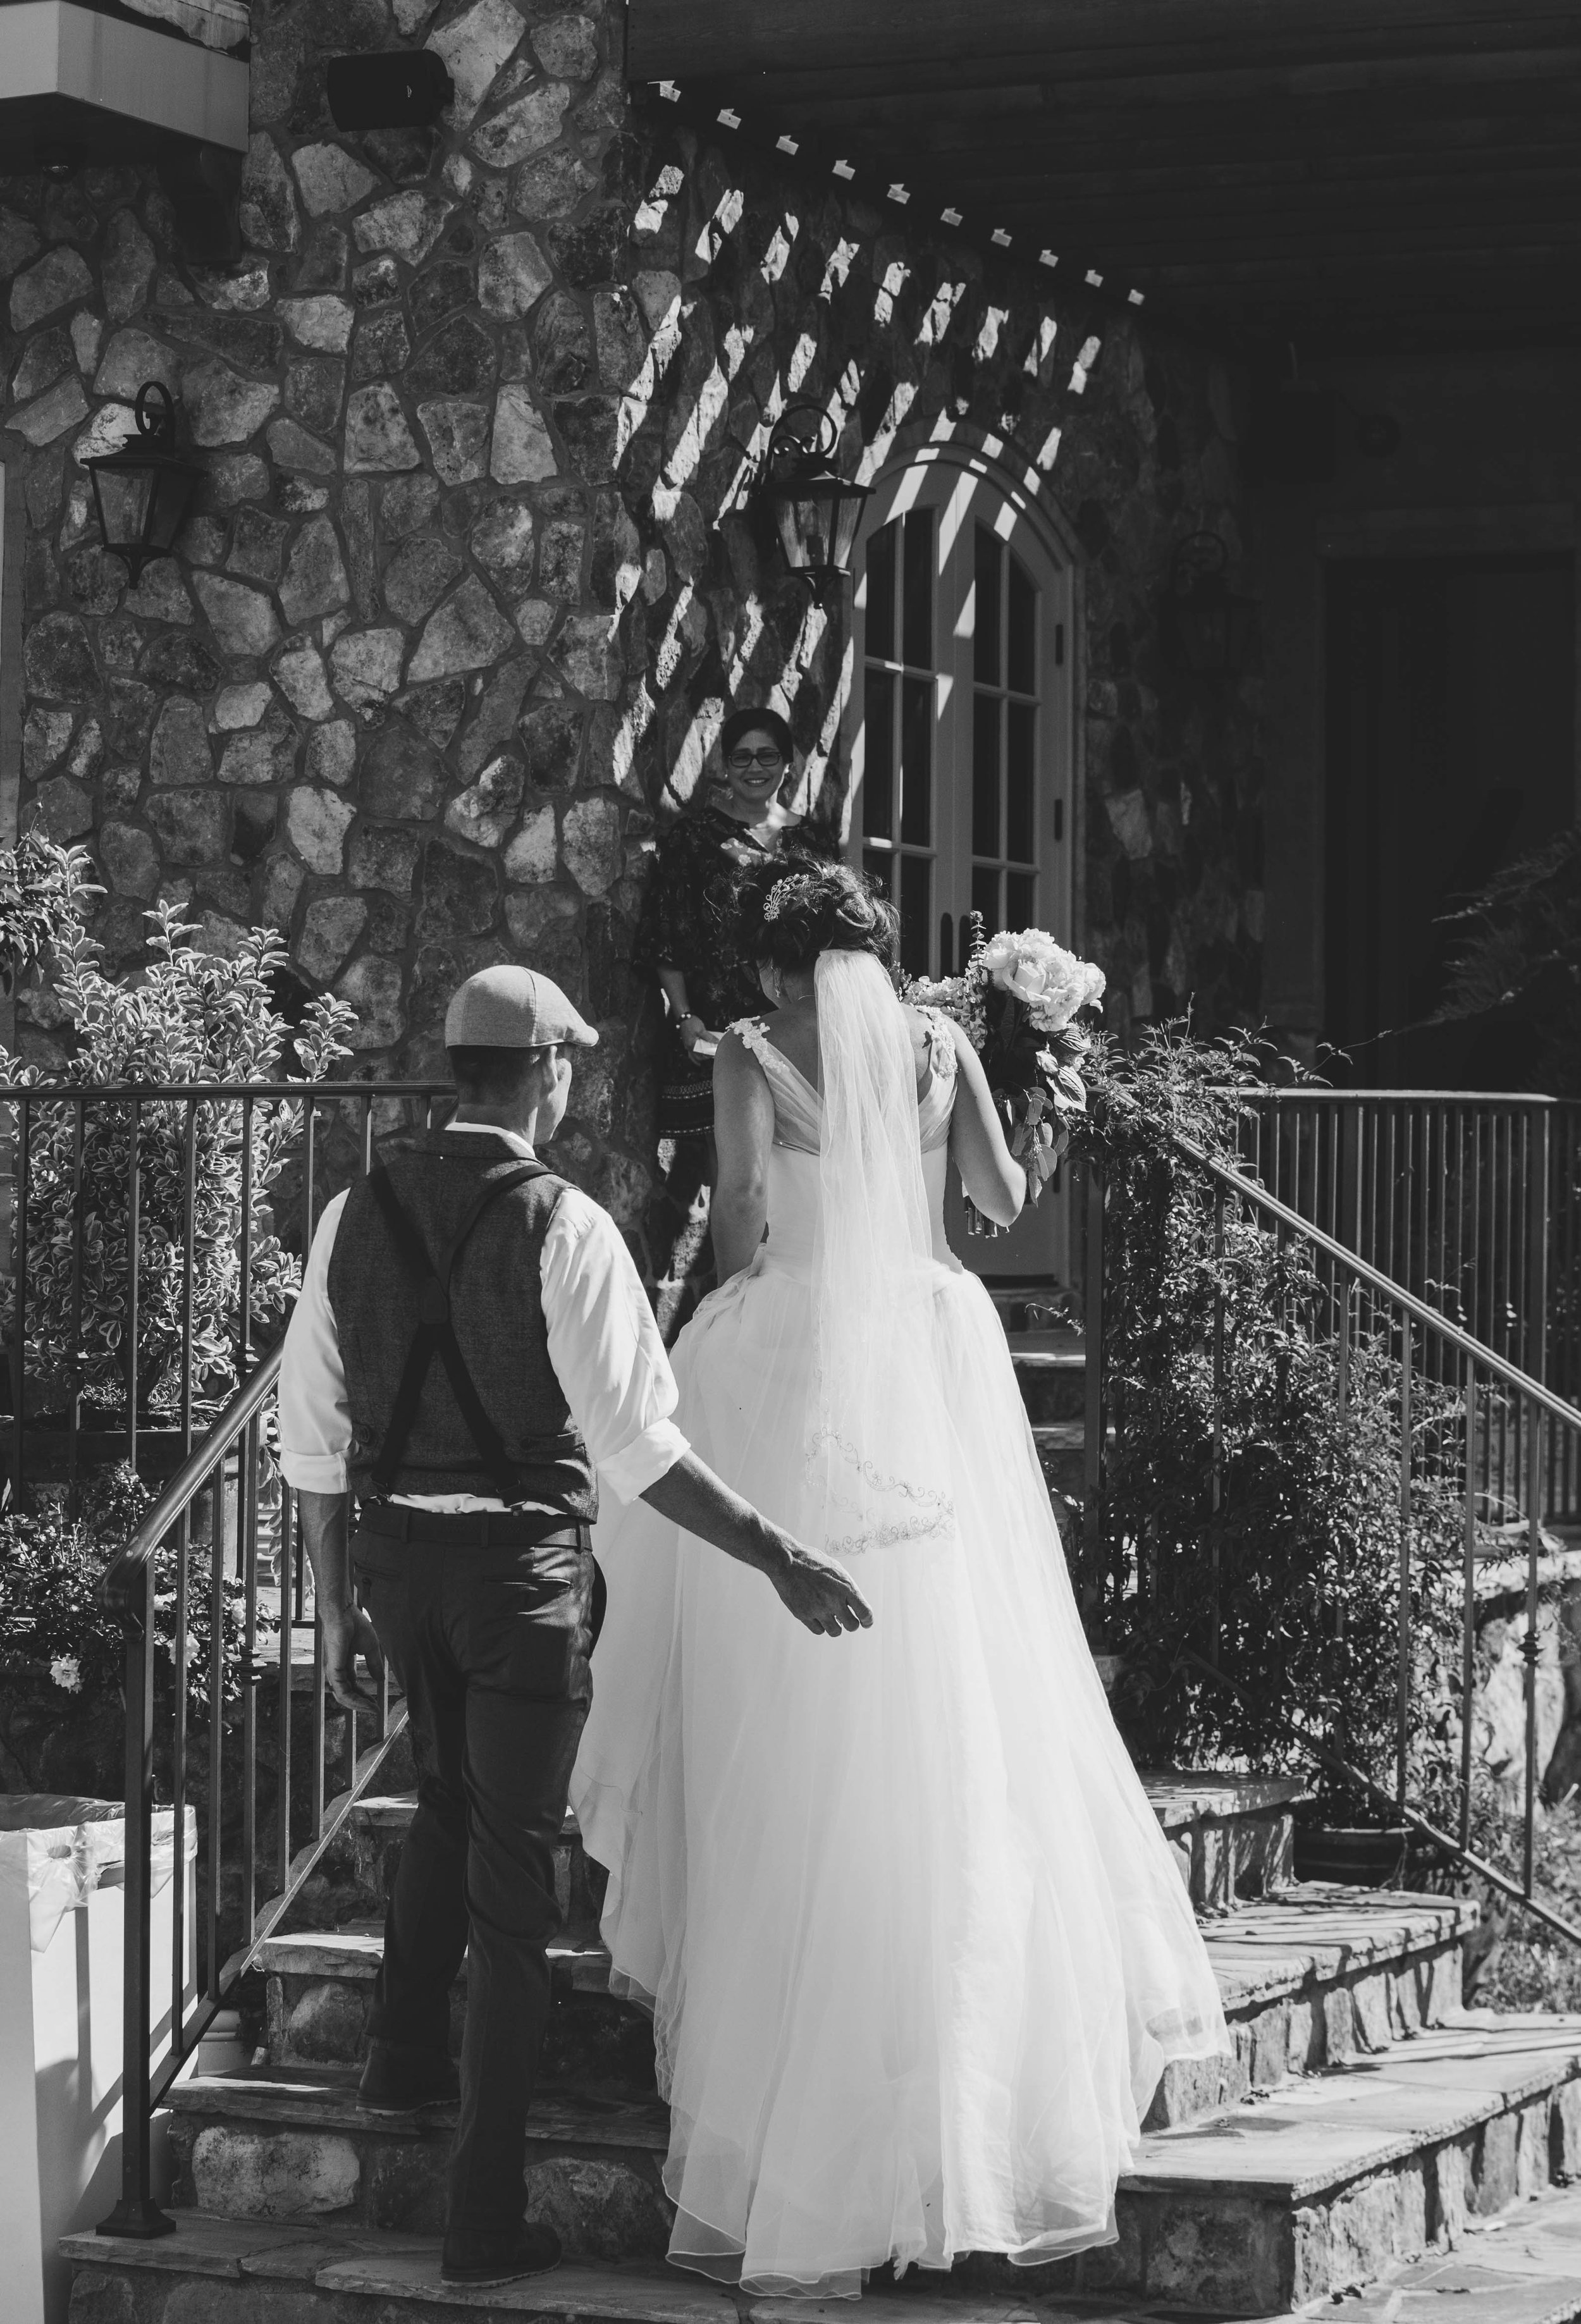 ATGI_Melissa & Jay Wedding_2017_717A6045.jpg